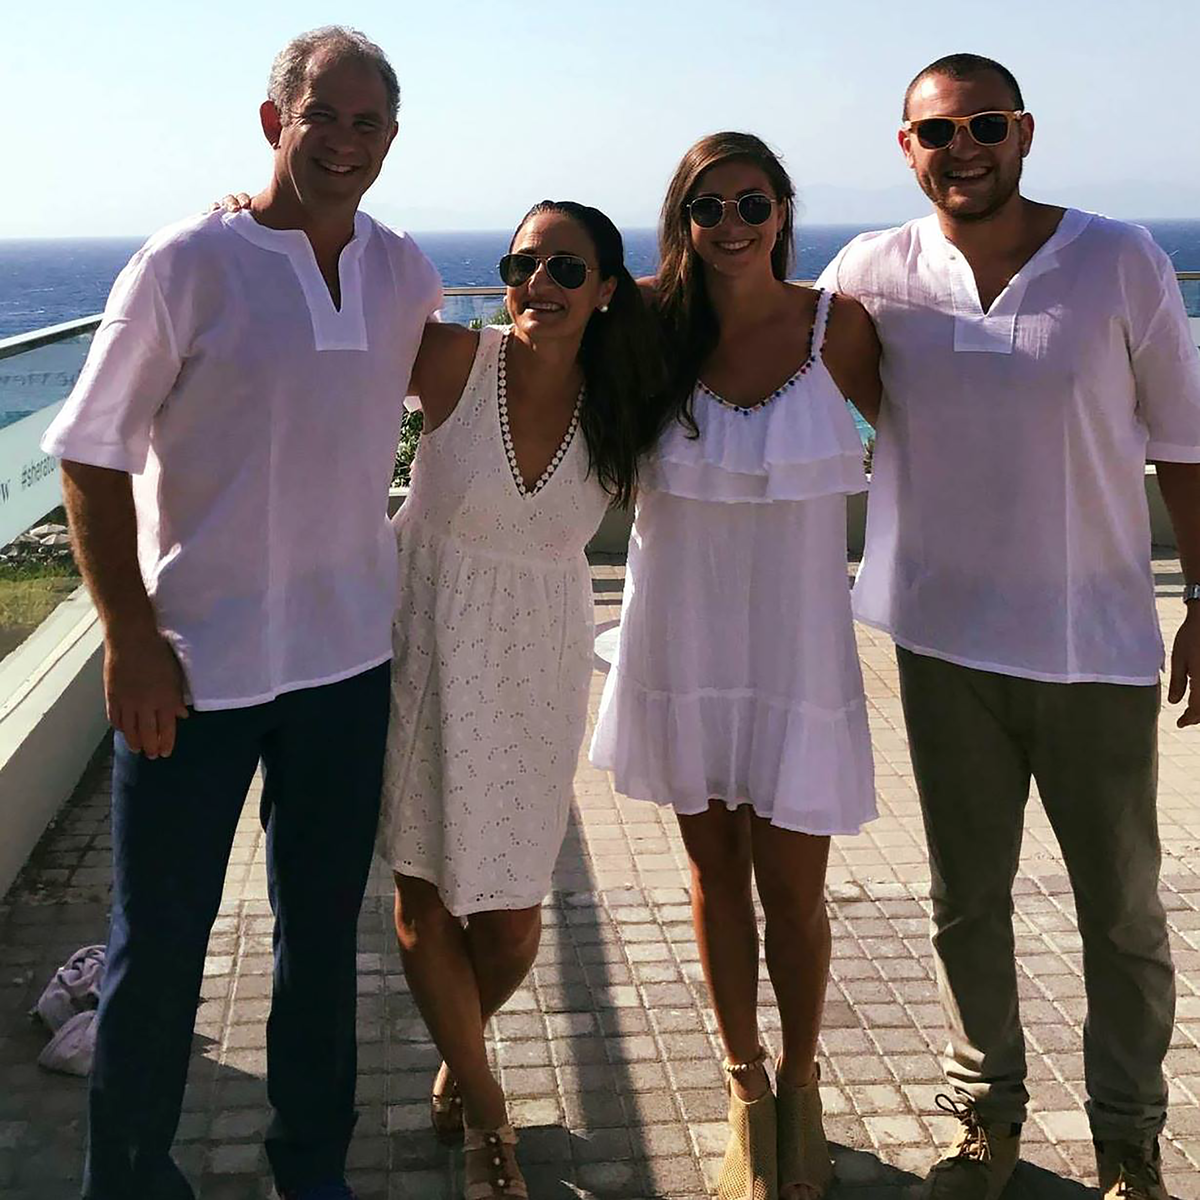 The Markowitz family in Rhodes, Greece. 2017.